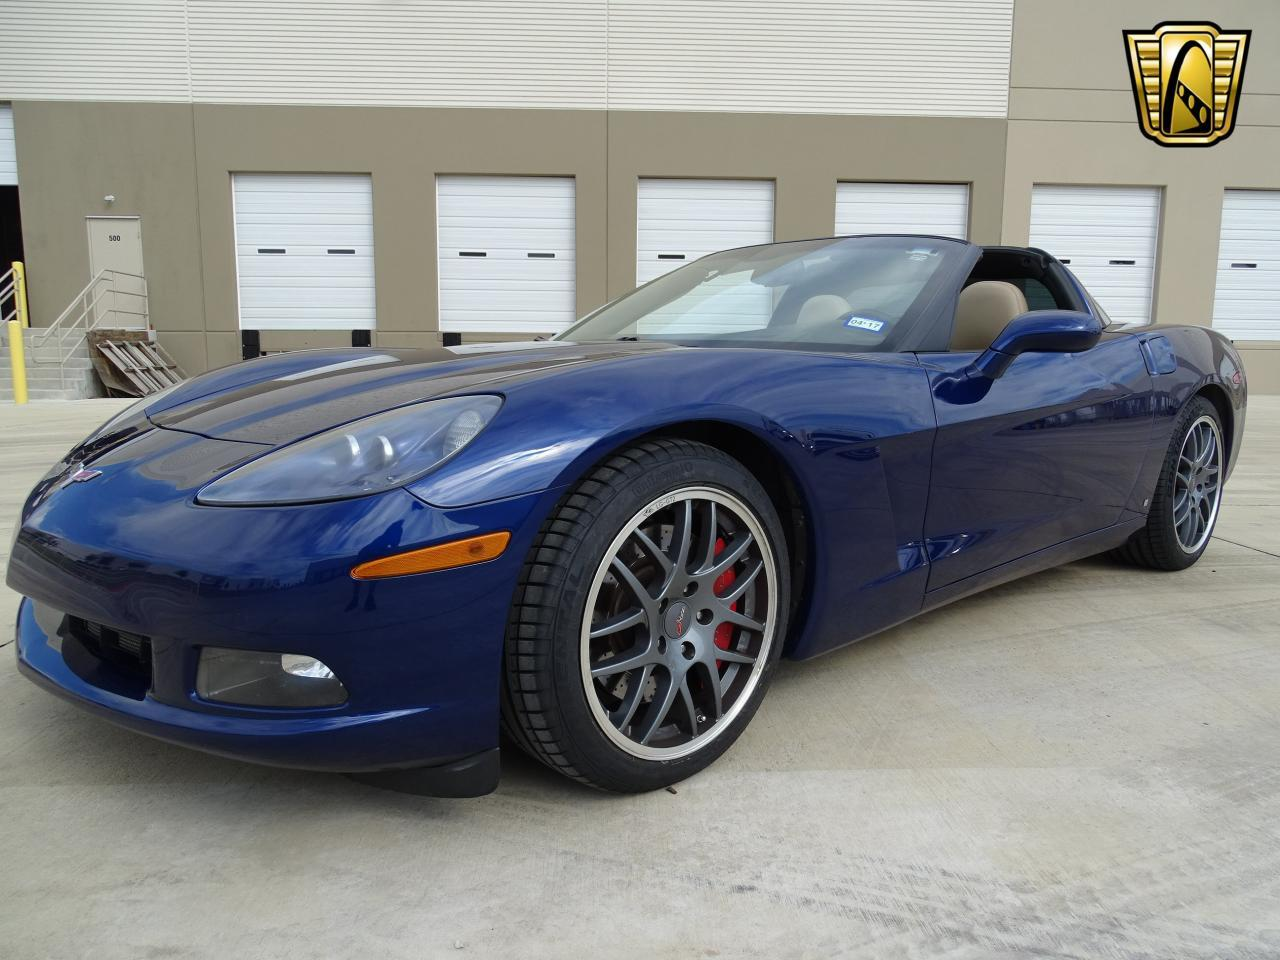 Large Picture of '06 Chevrolet Corvette located in DFW Airport Texas Offered by Gateway Classic Cars - Dallas - KEW3